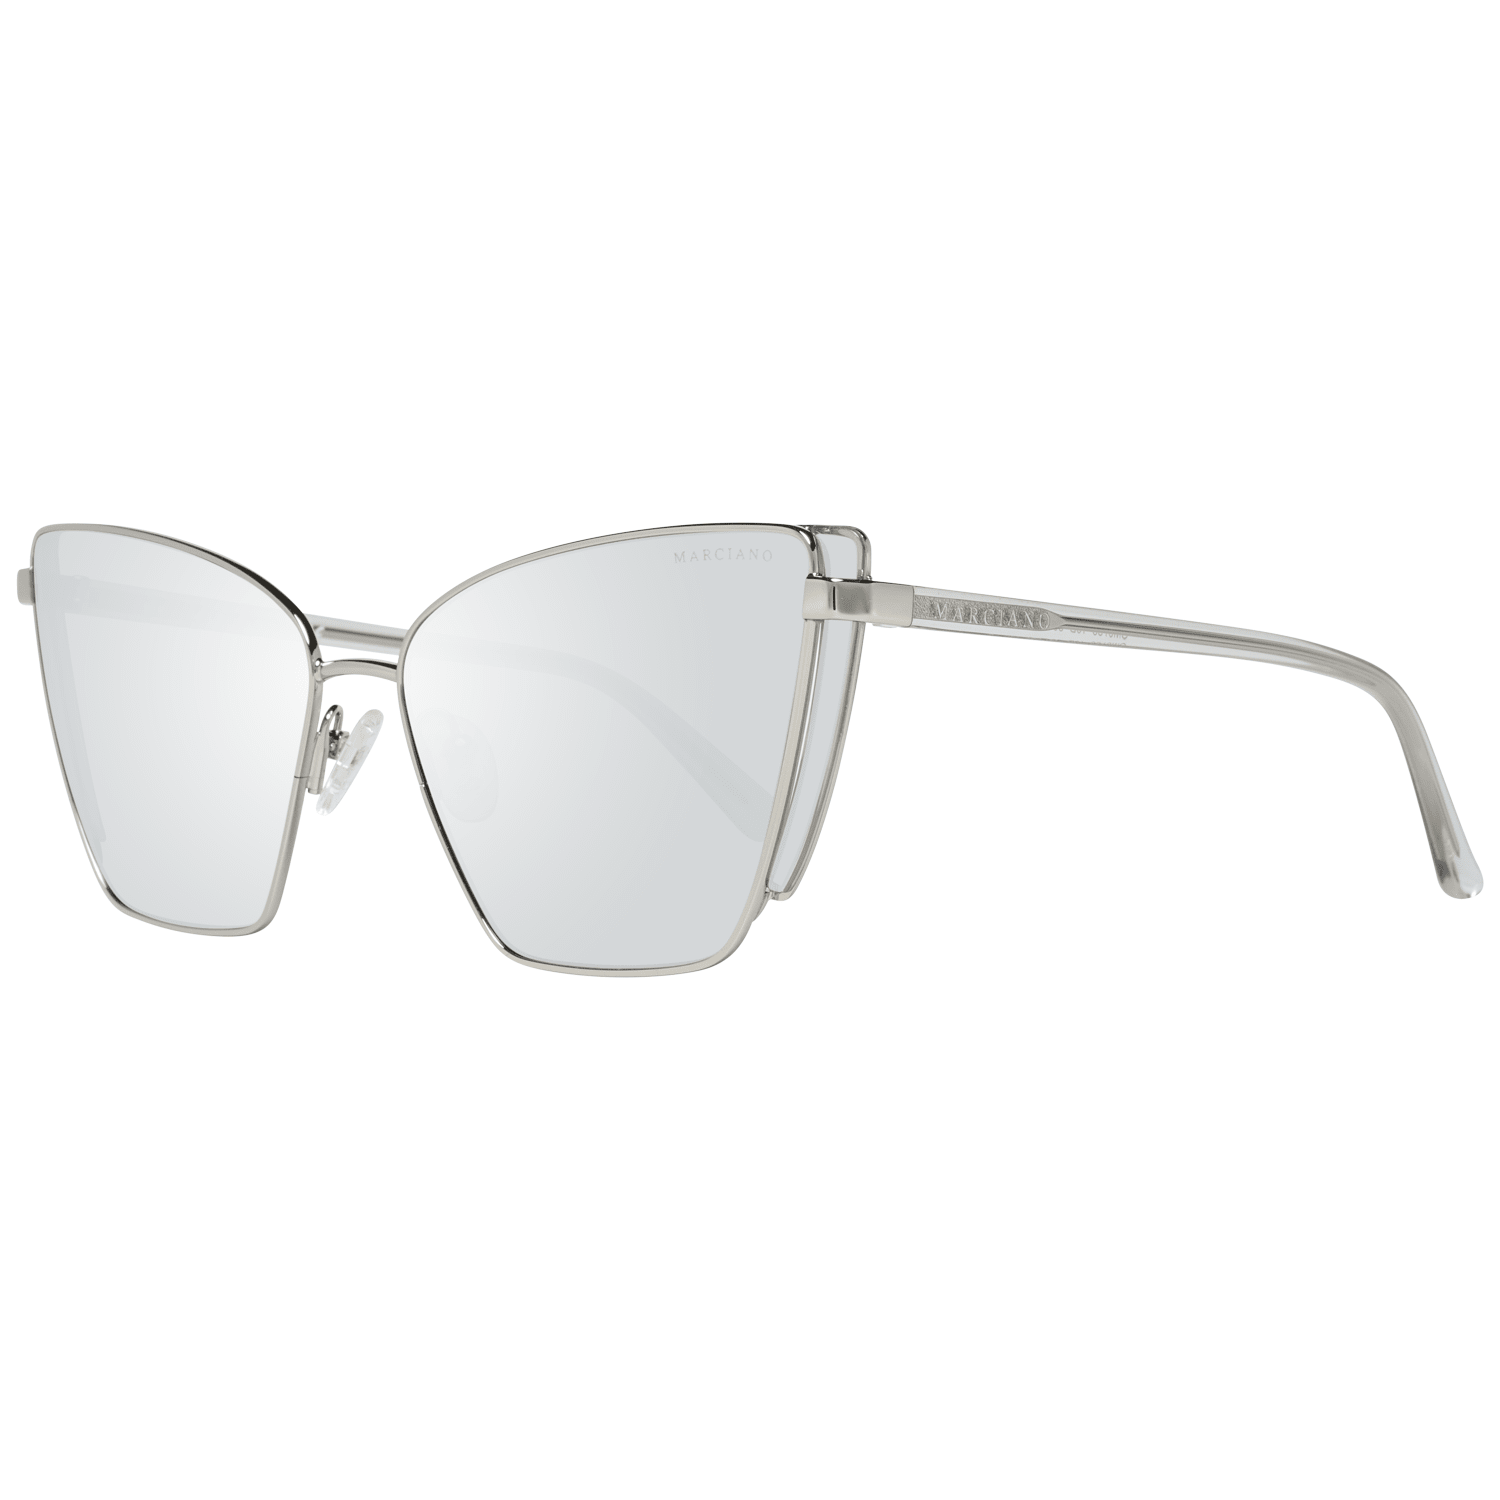 Guess By Marciano Women's Sunglasses Silver GM0788 5910B